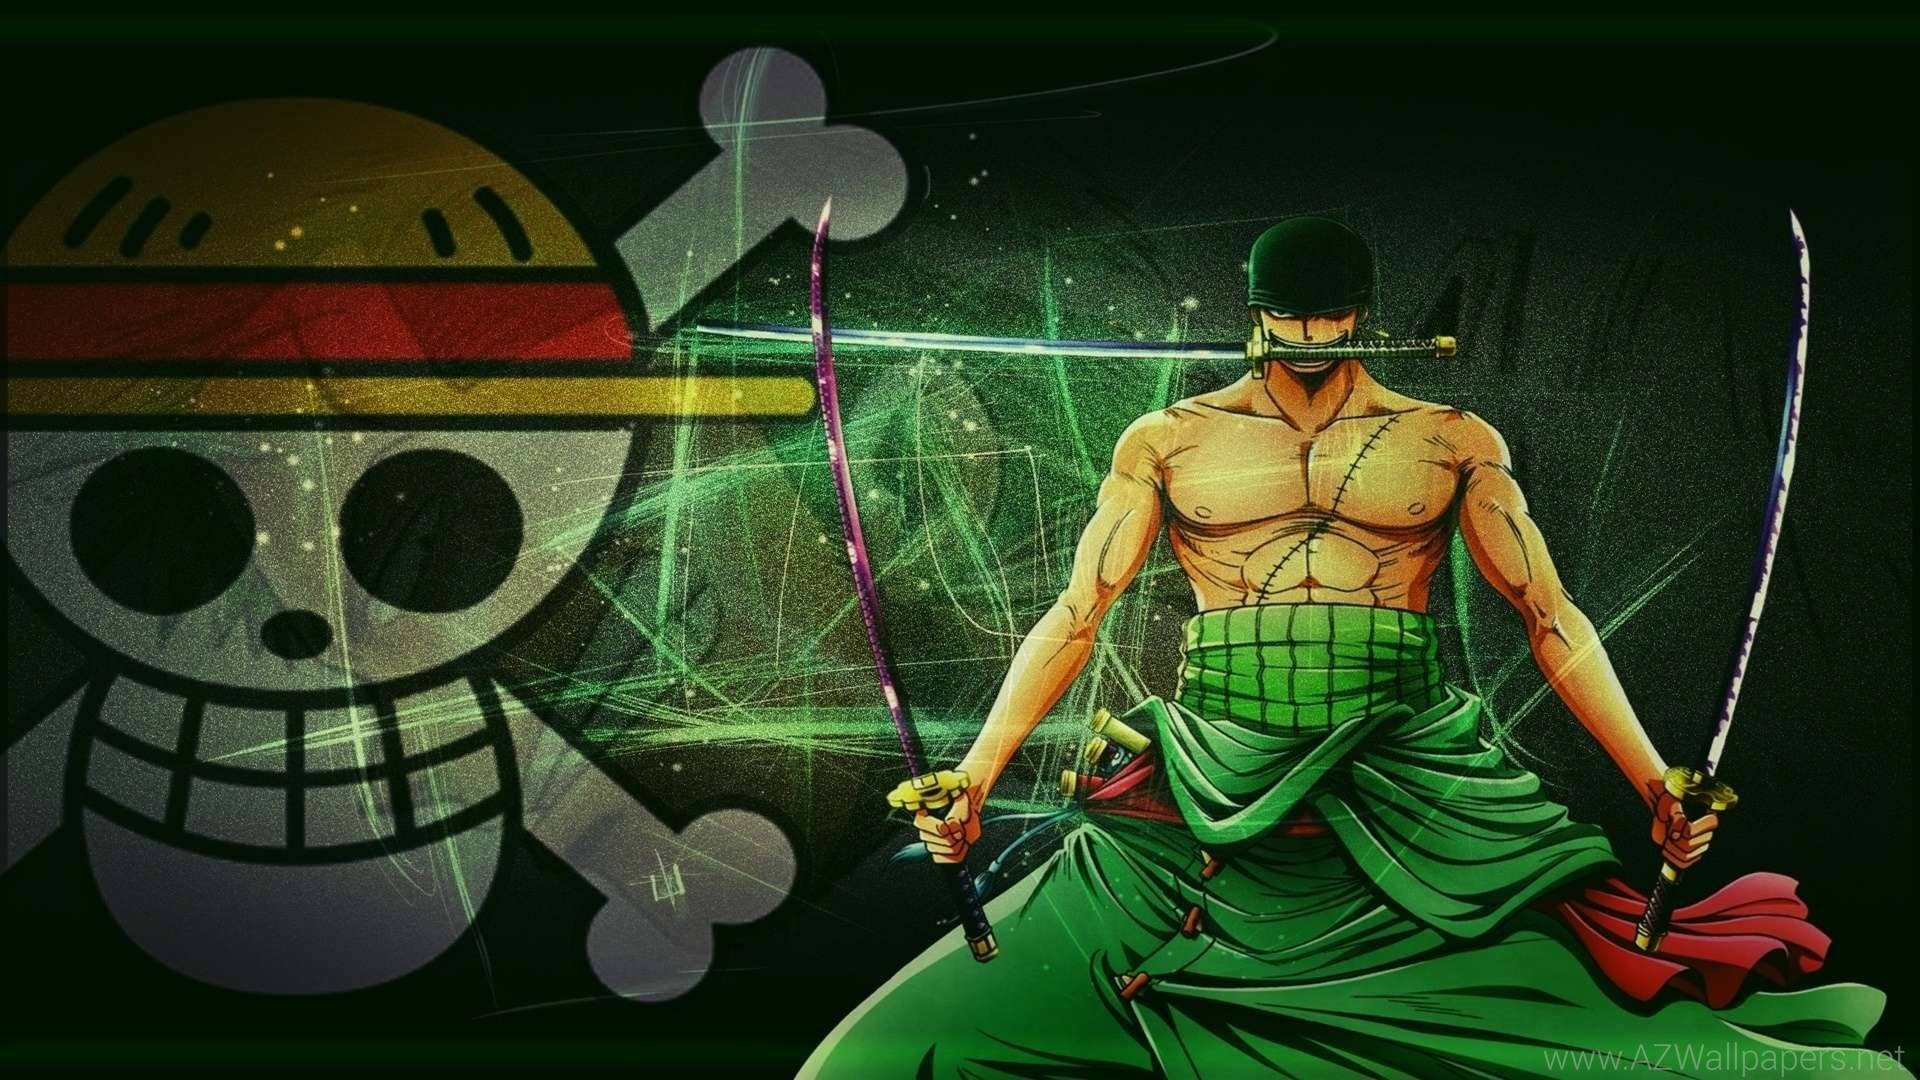 Roronoa zoro wallpapers 4k hd for desktop, iphone, pc, laptop, computer, android phone, smartphone, imac, macbook, tablet, mobile device. Zoro One Piece Wallpaper (65+ images)